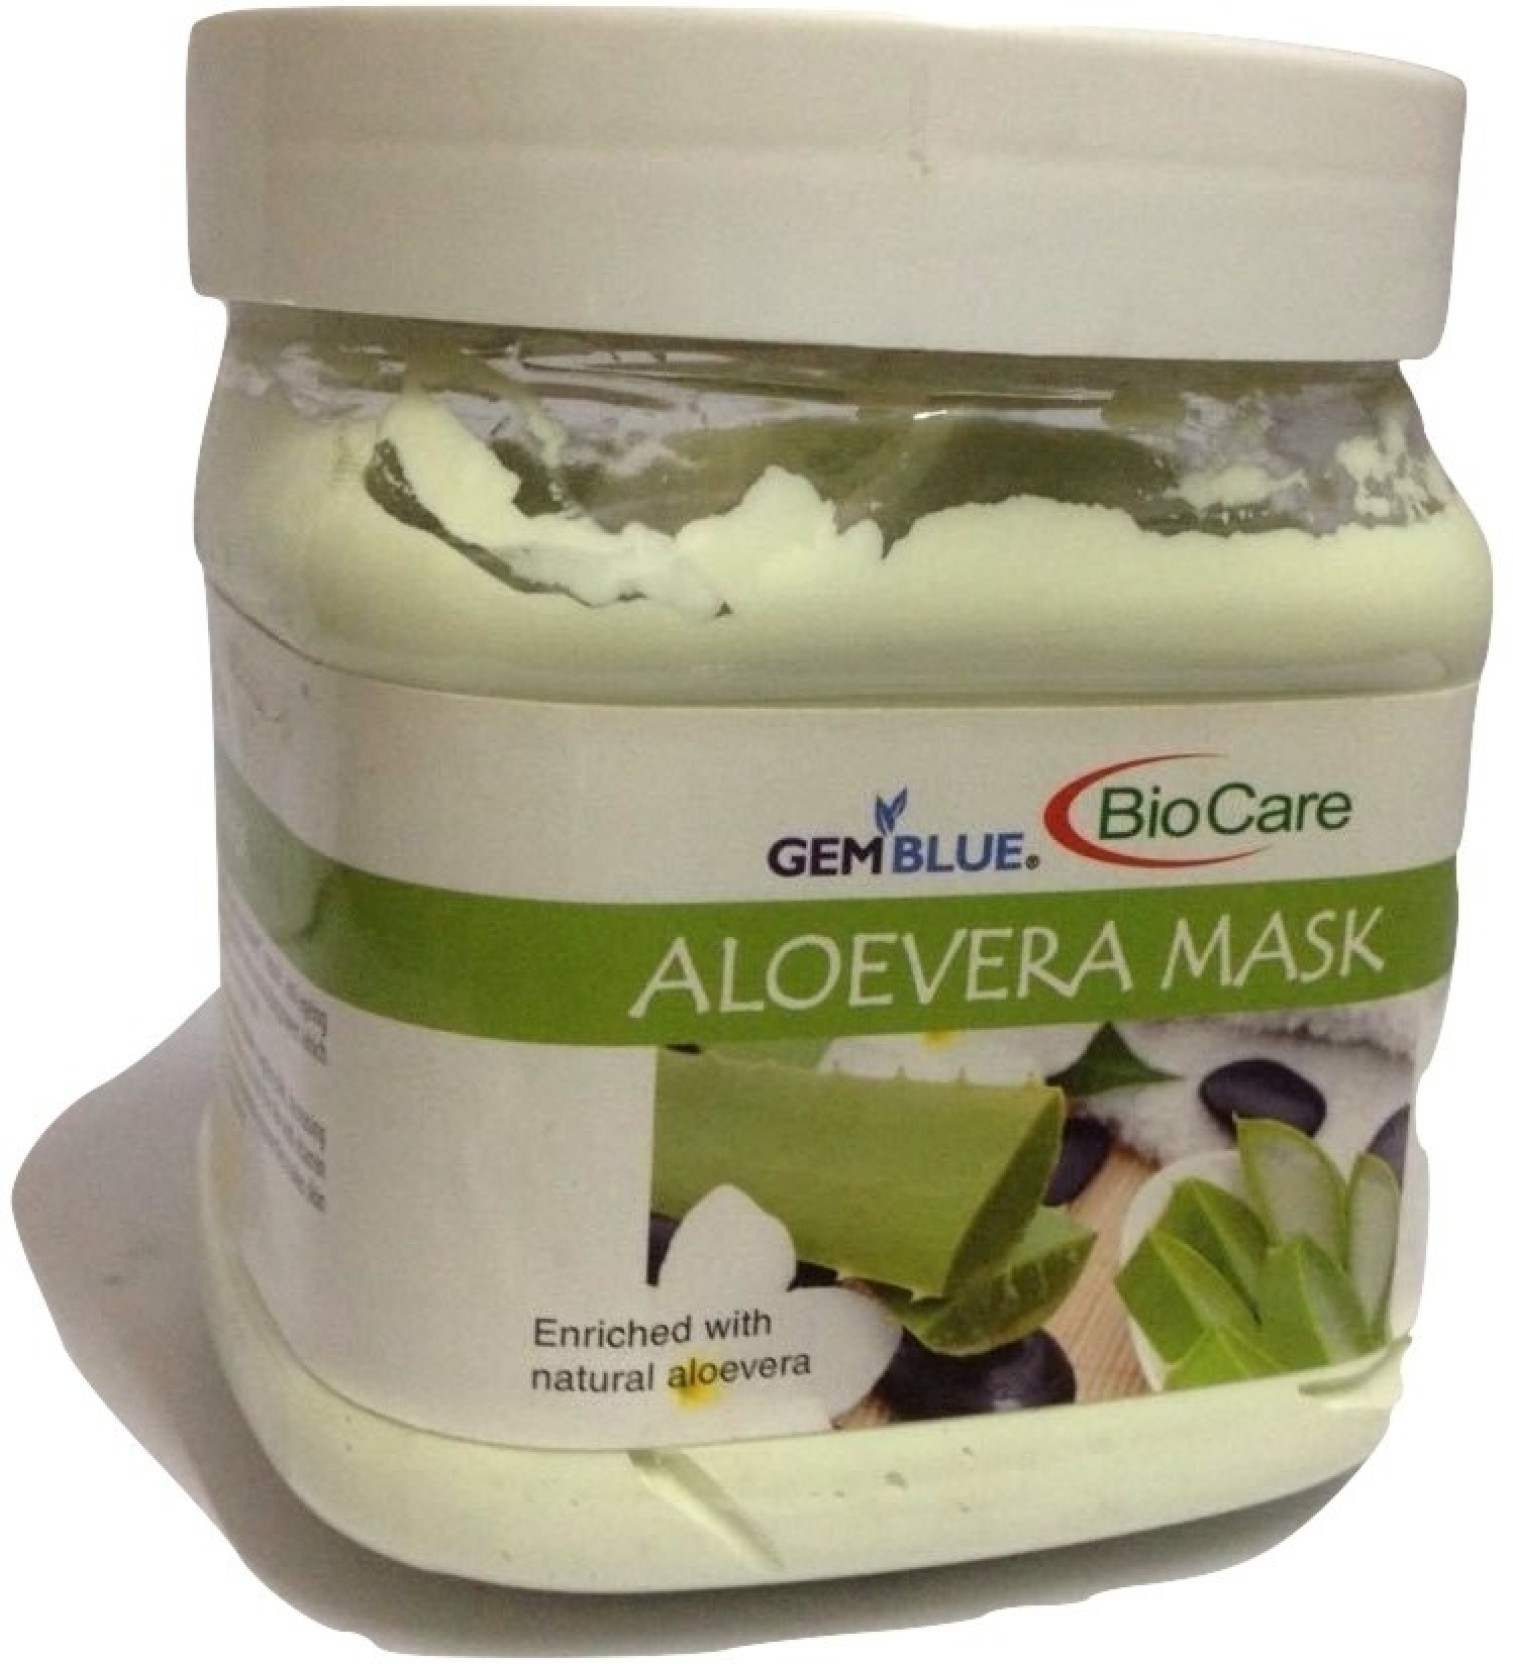 Gemblue Biocare Aleovera Mask Price In India Buy Ponds Facial Foam 50 Grm Add To Cart